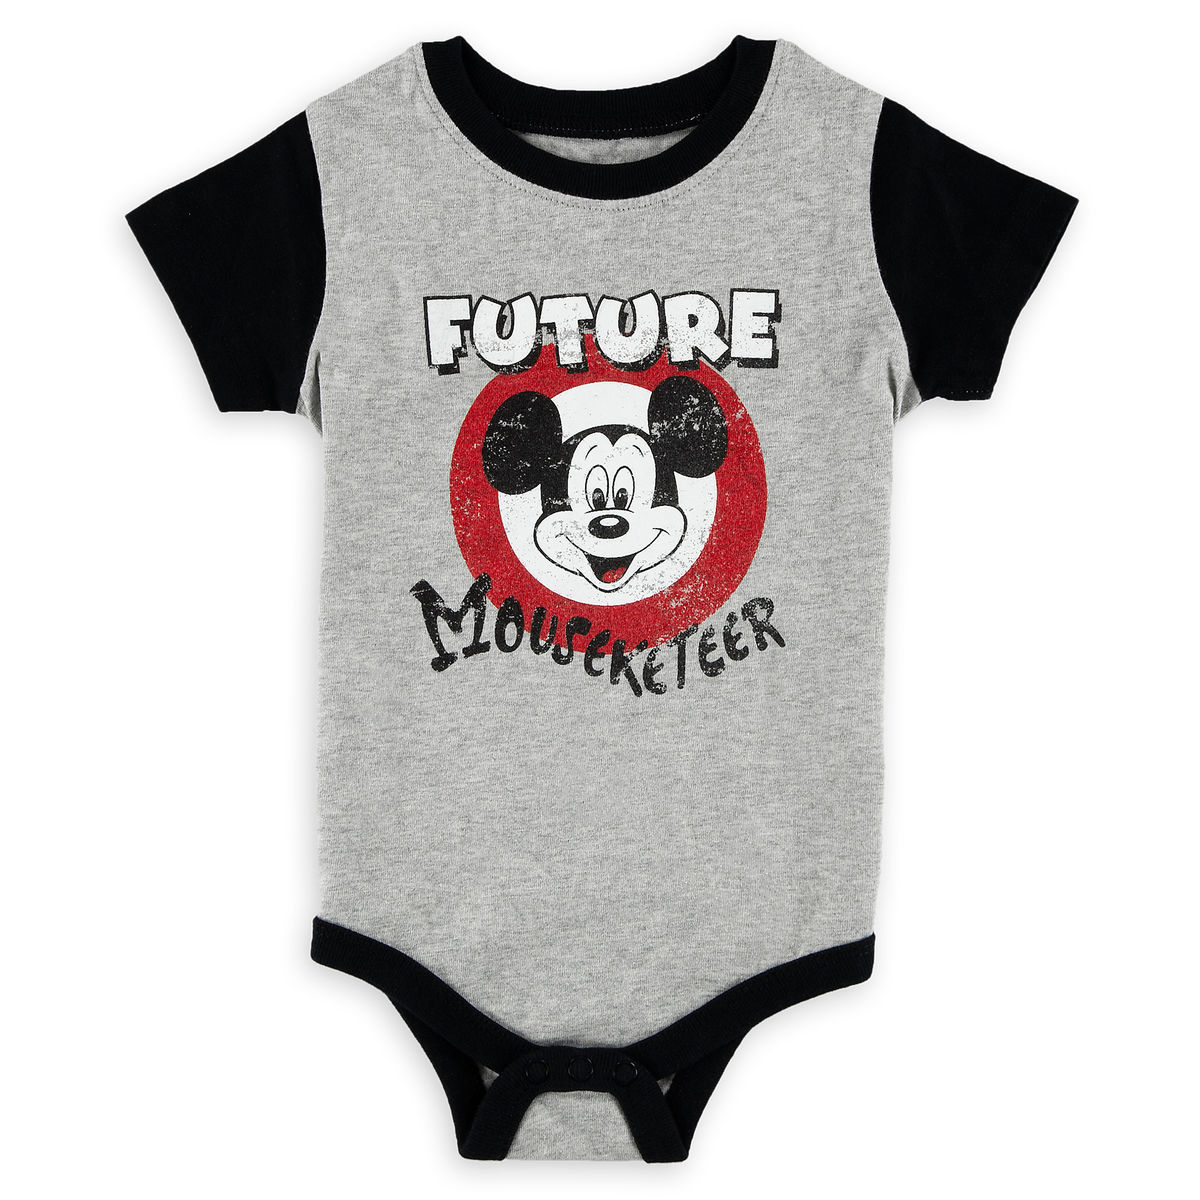 360b696f0 Disney Baby Bodysuit - Mickey Mouse Club - Future Mouseketeer